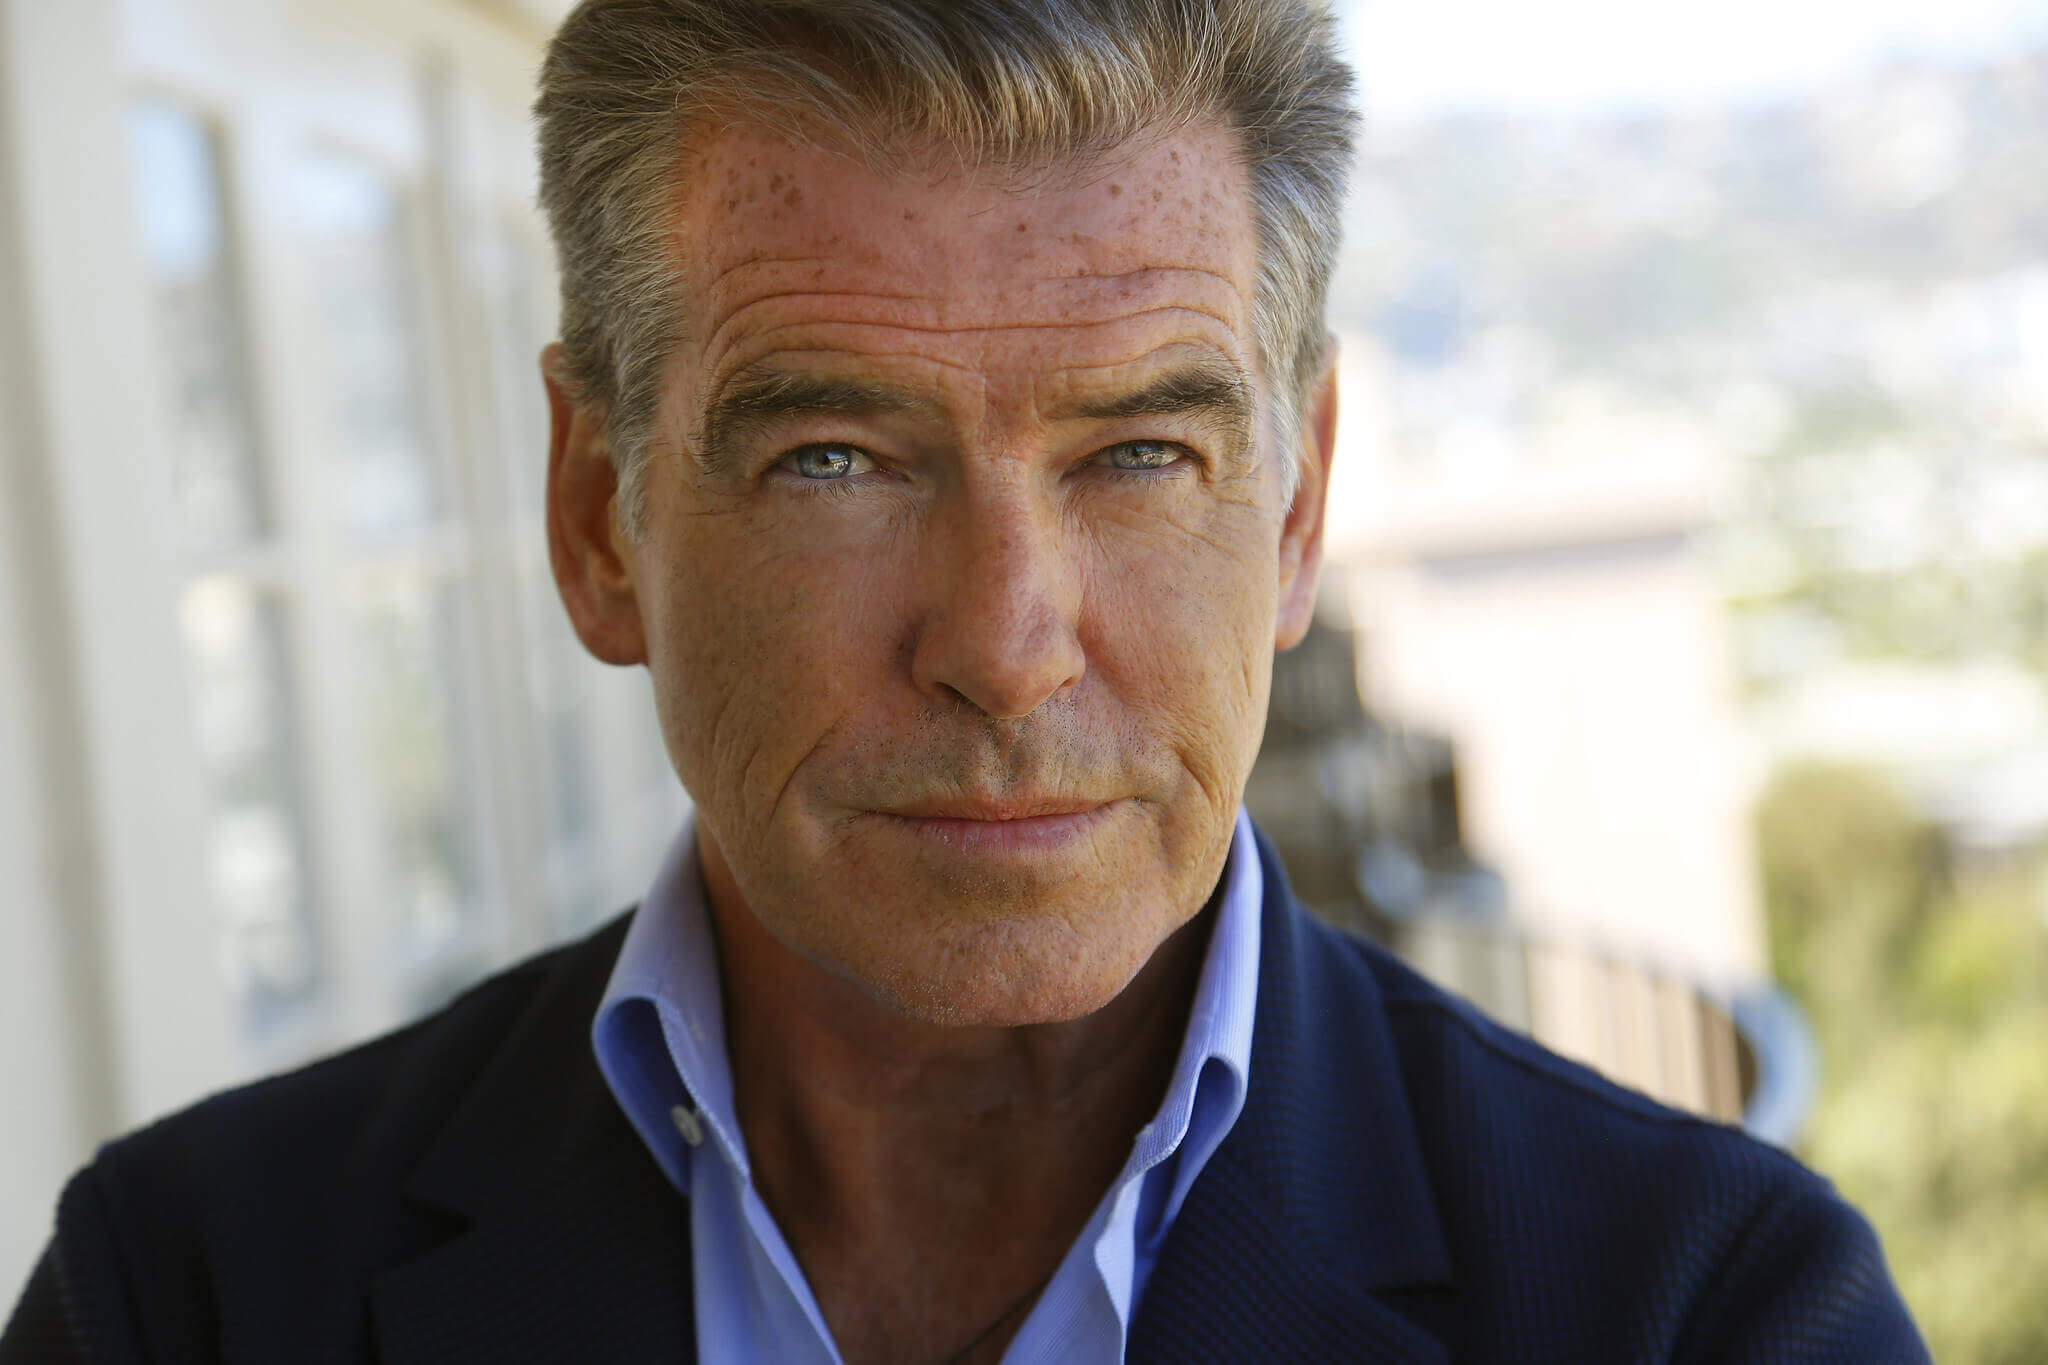 Pierce Brosnan, Martin Campbell to Adapt Ernest Hemingway Novel